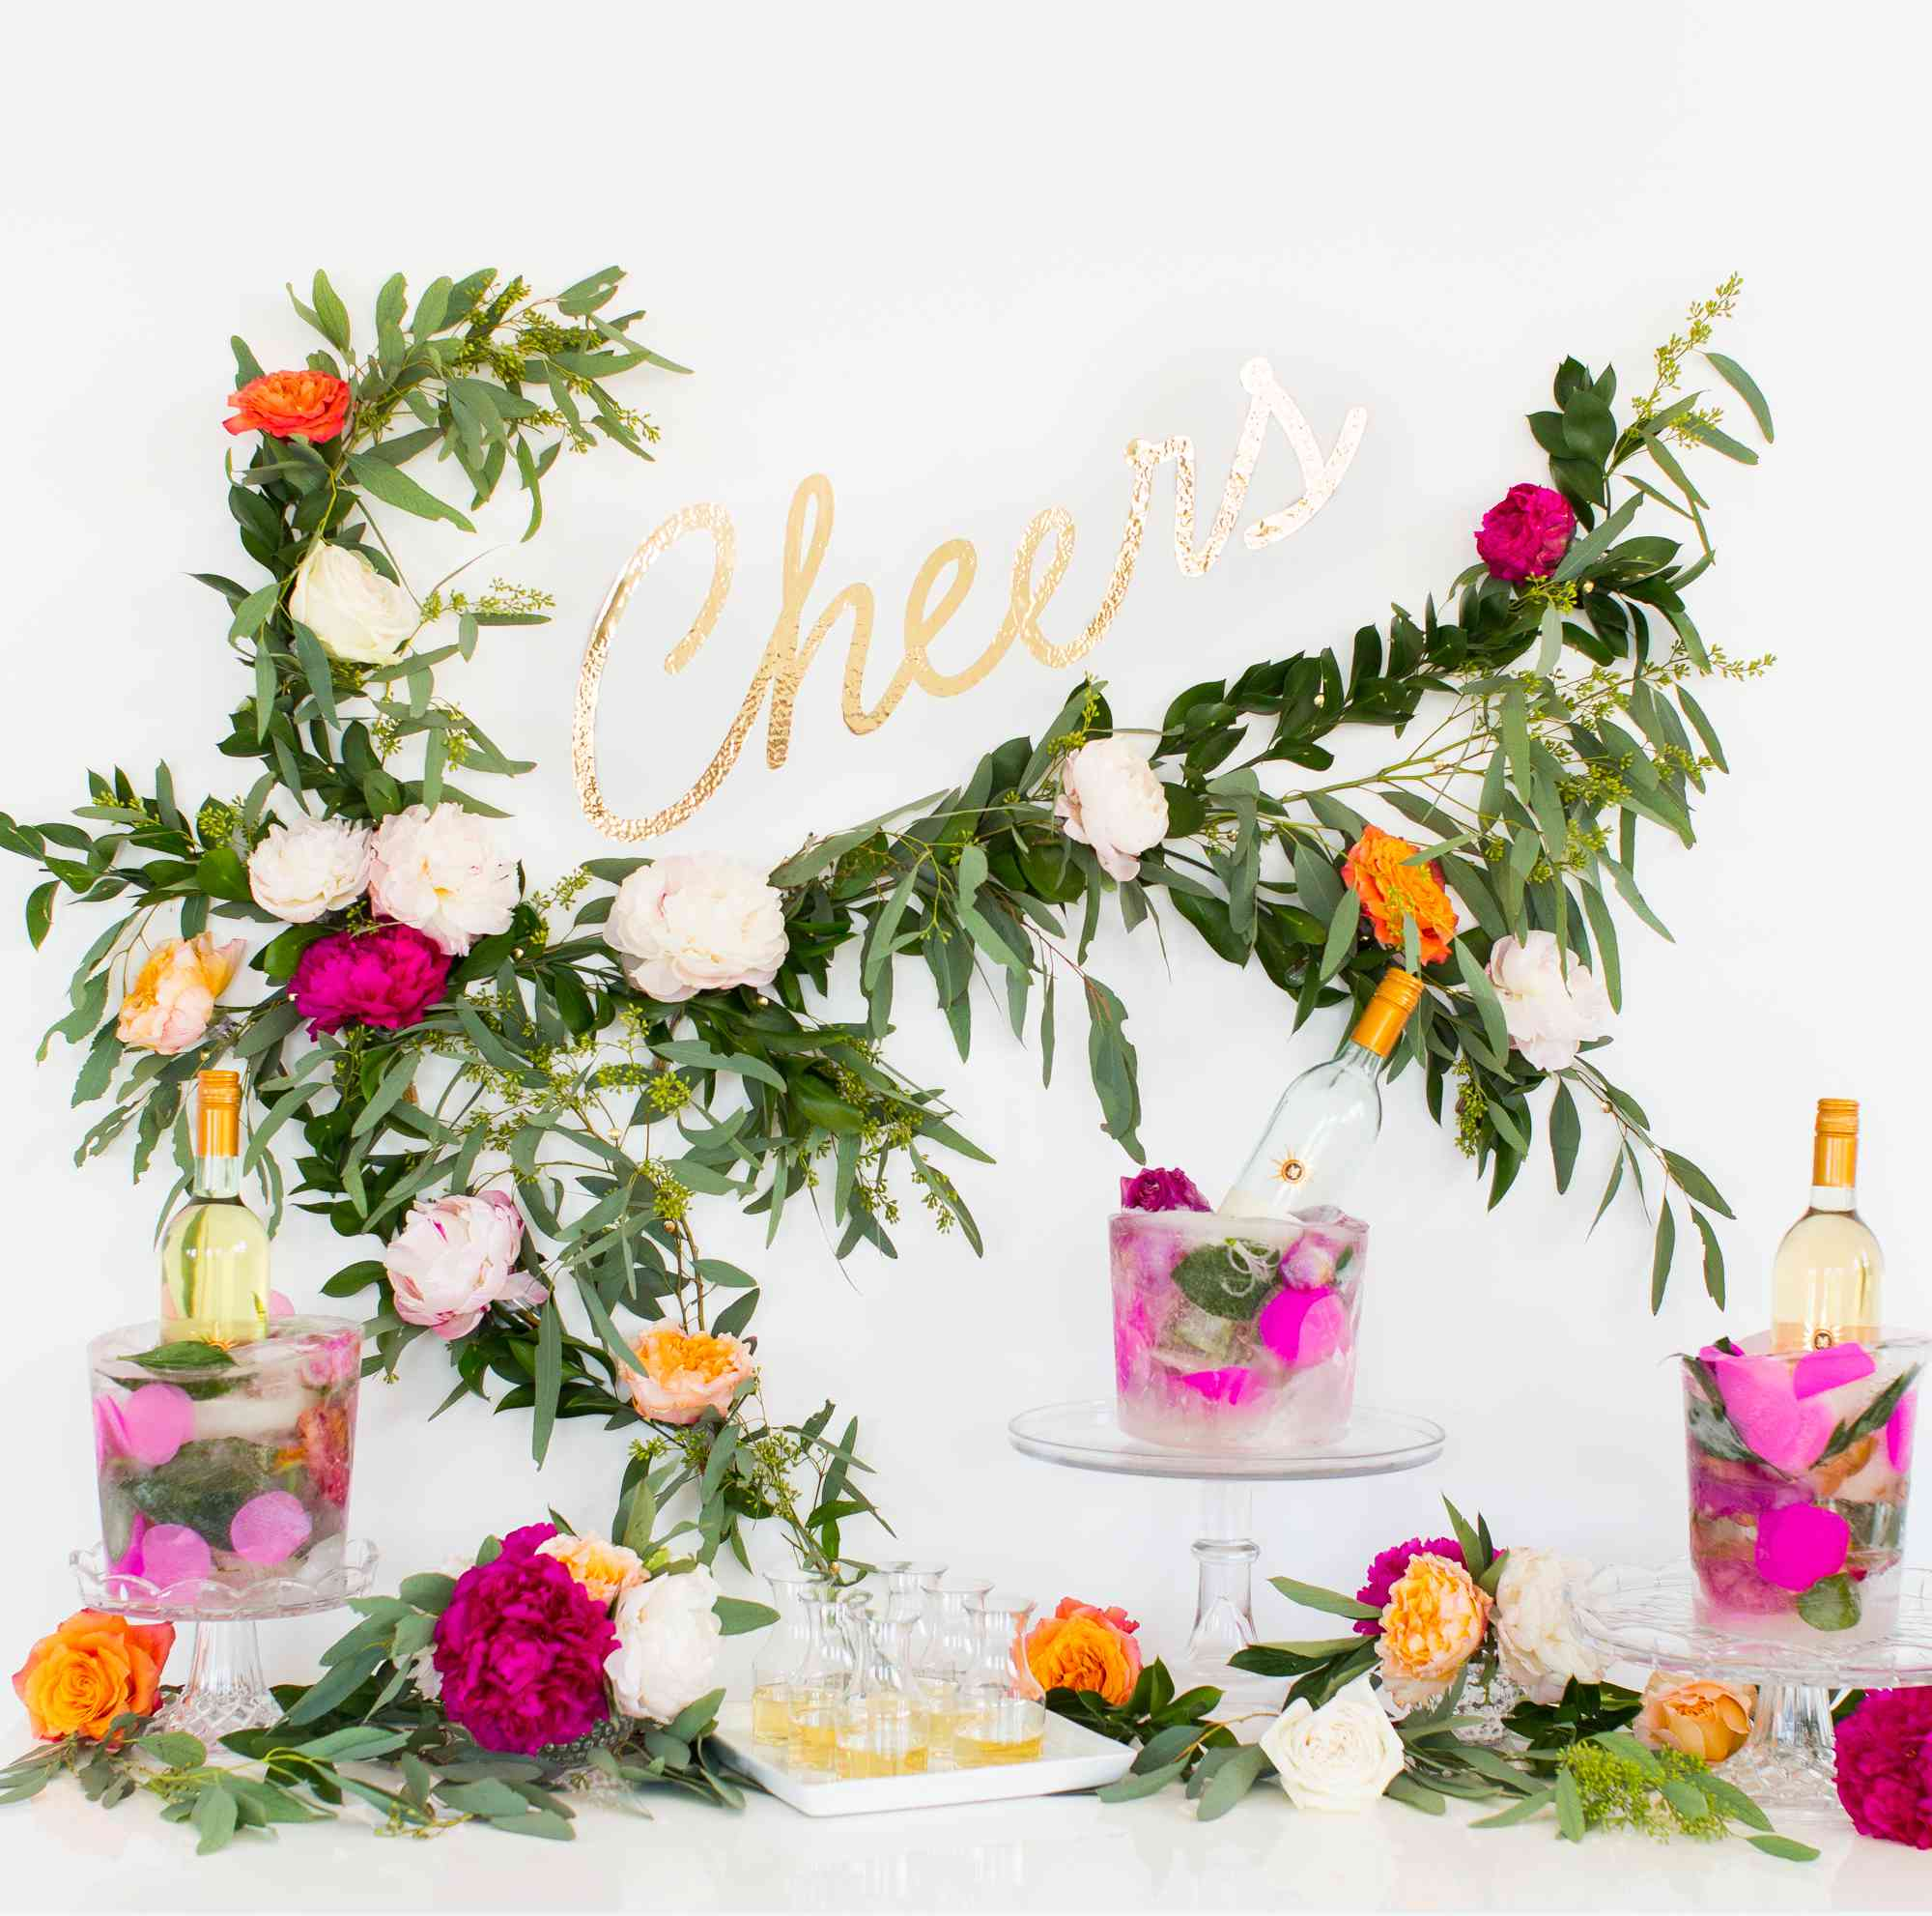 A bar setup with floral décor and bottles of wine in flower filled ice buckets